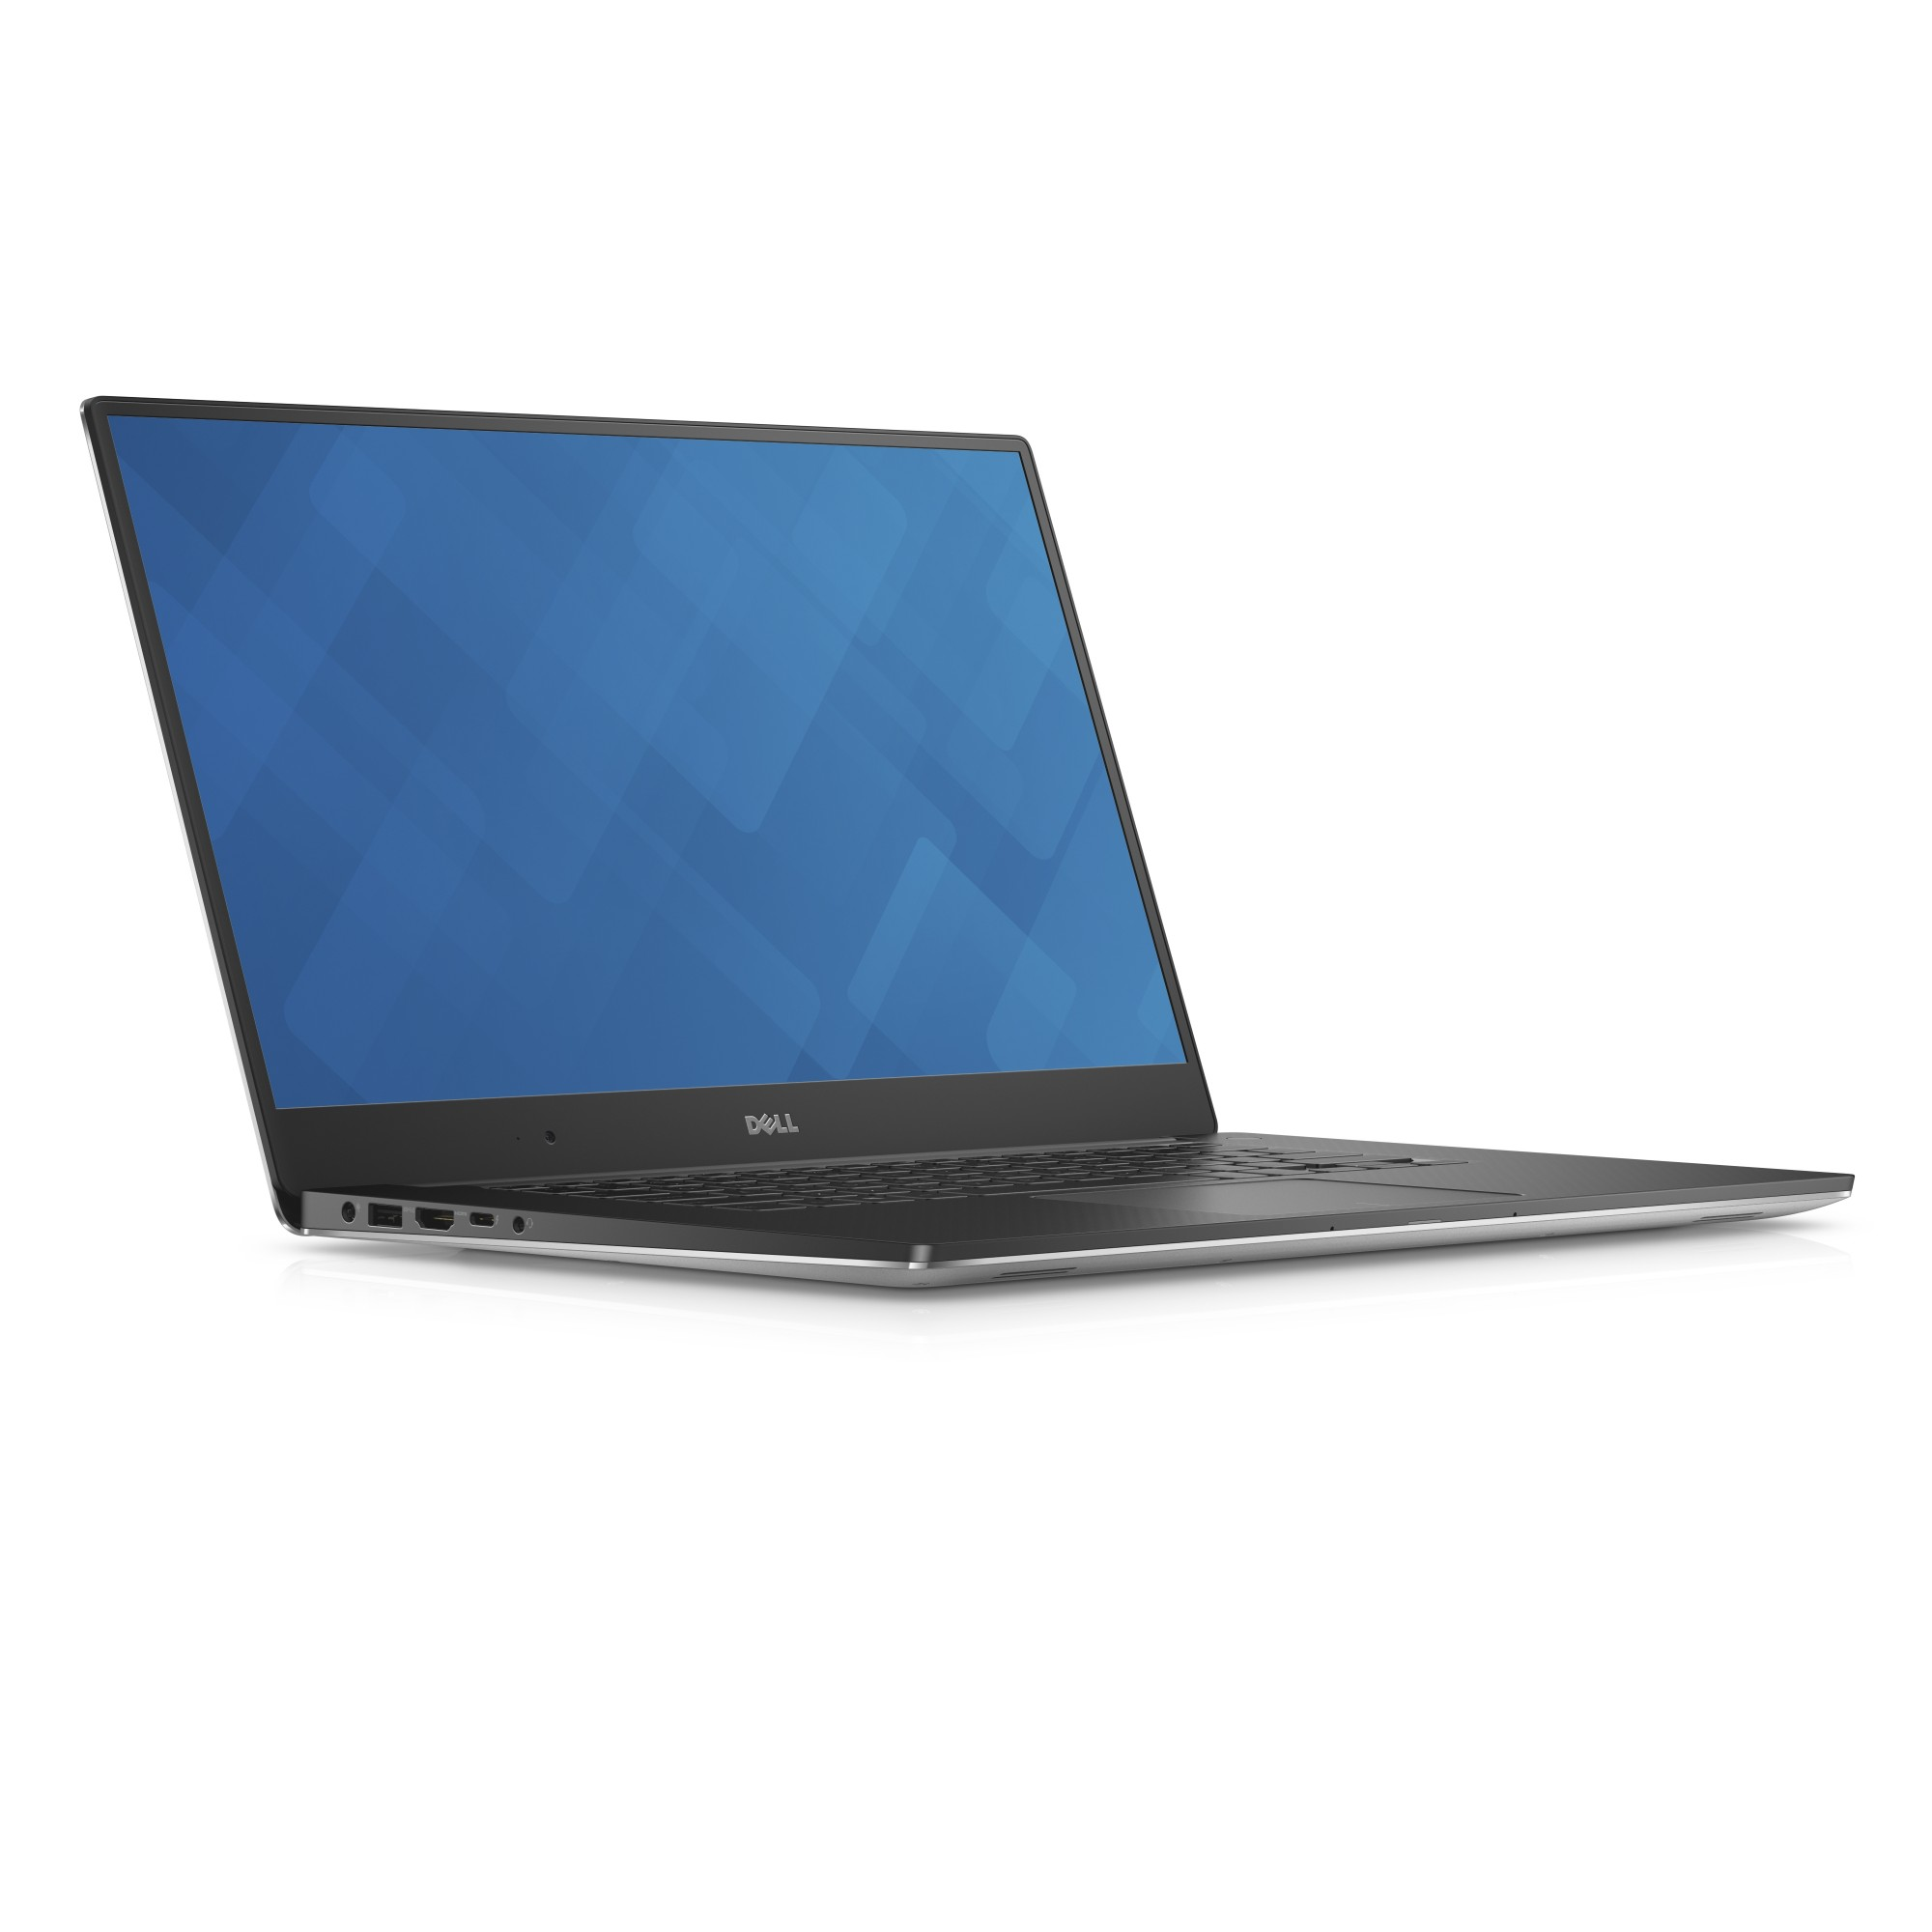 "DELL Precision m5510 2.7GHz i7-6820HQ 15.6"" 1920 x 1080pixels Black,Silver Mobile workstation"